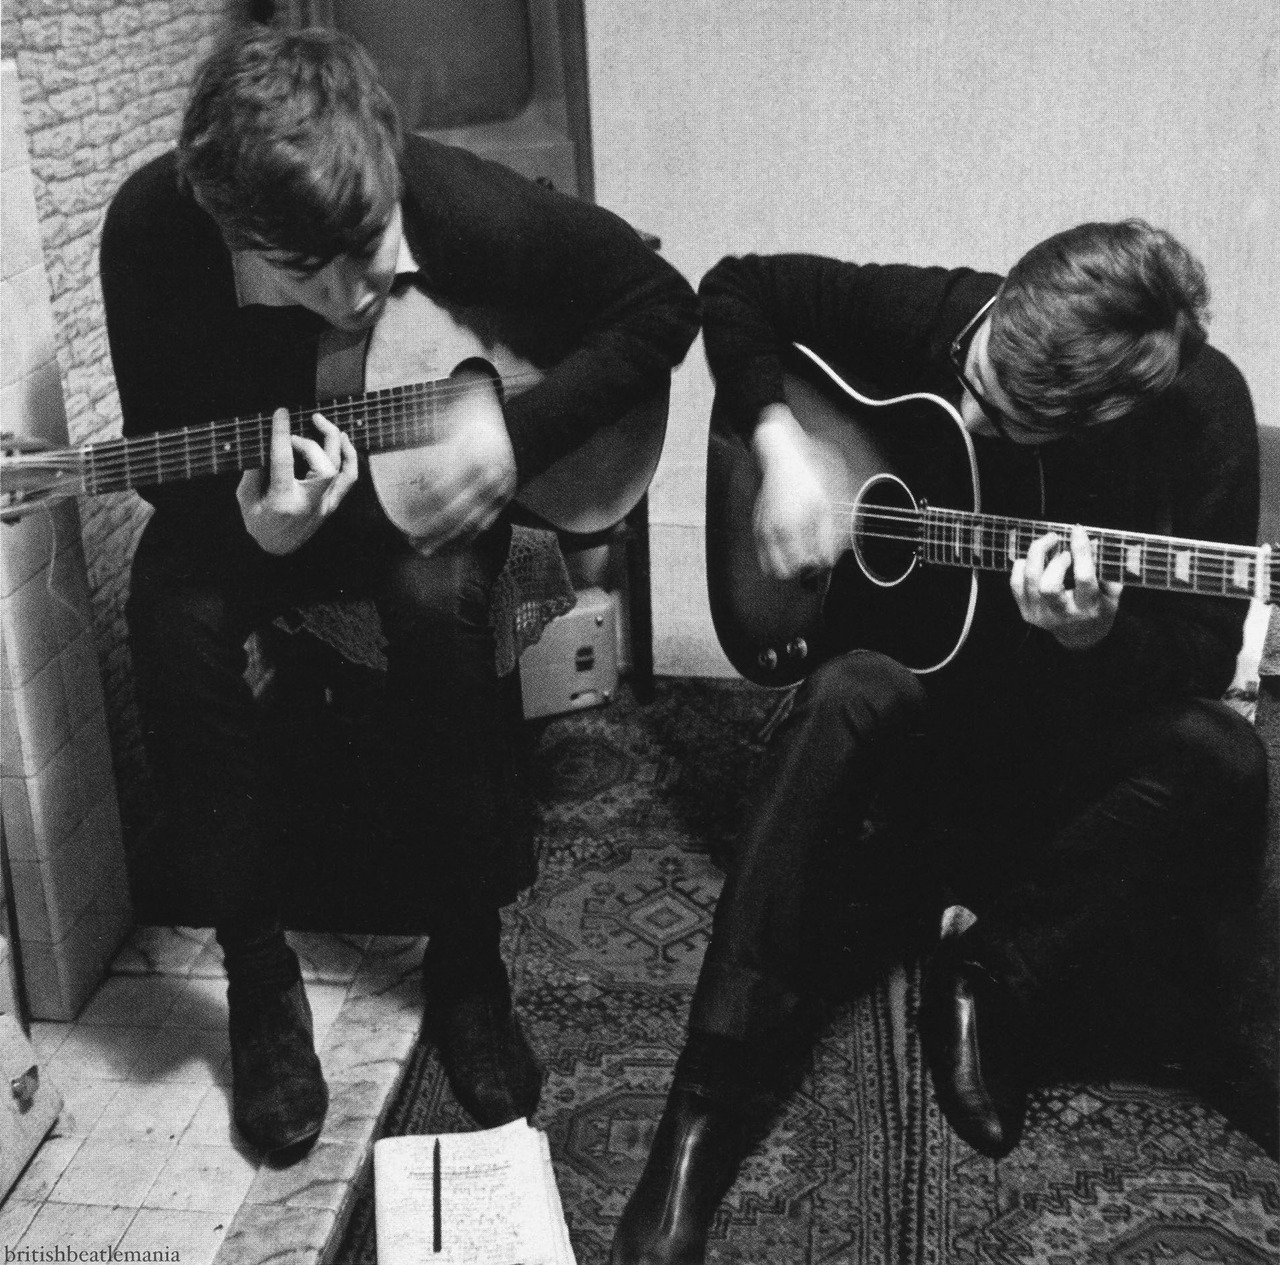 "austinkleon: Paul McCartney and John Lennon writing ""I Saw Her Standing There,"" 1962 I looked this photo up after reading about it in Joshua Shenk's Powers of Two: Finding the Essence of Innovation in Creative Pairs: One late November afternoon in 1962, John Lennon and Paul McCartney got together to write at Paul's house at 20 Forthlin Road in Liverpool. Their ritual was to come around in the afternoon, just the two of them, when Paul's dad was at work. They would go to the small front room overlooking Jim McCartney's patch of garden and sit opposite each other. ""Like mirrors,"" Paul said. John sat on a chair pulled in from the dining room. He had his Jumbo Gibson acoustic-electric with a sunburst finish. Paul sat on a little table in front of the telly with his foot on the hearth of the coal fireplace. He played a Spanish-style guitar with nylon strings, strung in reverse for a lefty. In a photography shot by Paul's brother, Michael, they're both looking down at a notebook on the floor, filled with lyrics… …Years later, Paul told his brother that he loved his photo of the ""I Saw Her Standing There"" writing session because it captured how it really was—""the Rodgers and Hammerstein of pop at work."" Writing ""eyeball to eyeball,"" as John said, they weren't just frontmen for a rock group; they were composers working in concert. There's a Lennon/McCartney excerpt of the book over at the Atlantic. Photo credit: Mike McCartney, image via britishbeatlemania Filed under: The Beatles"